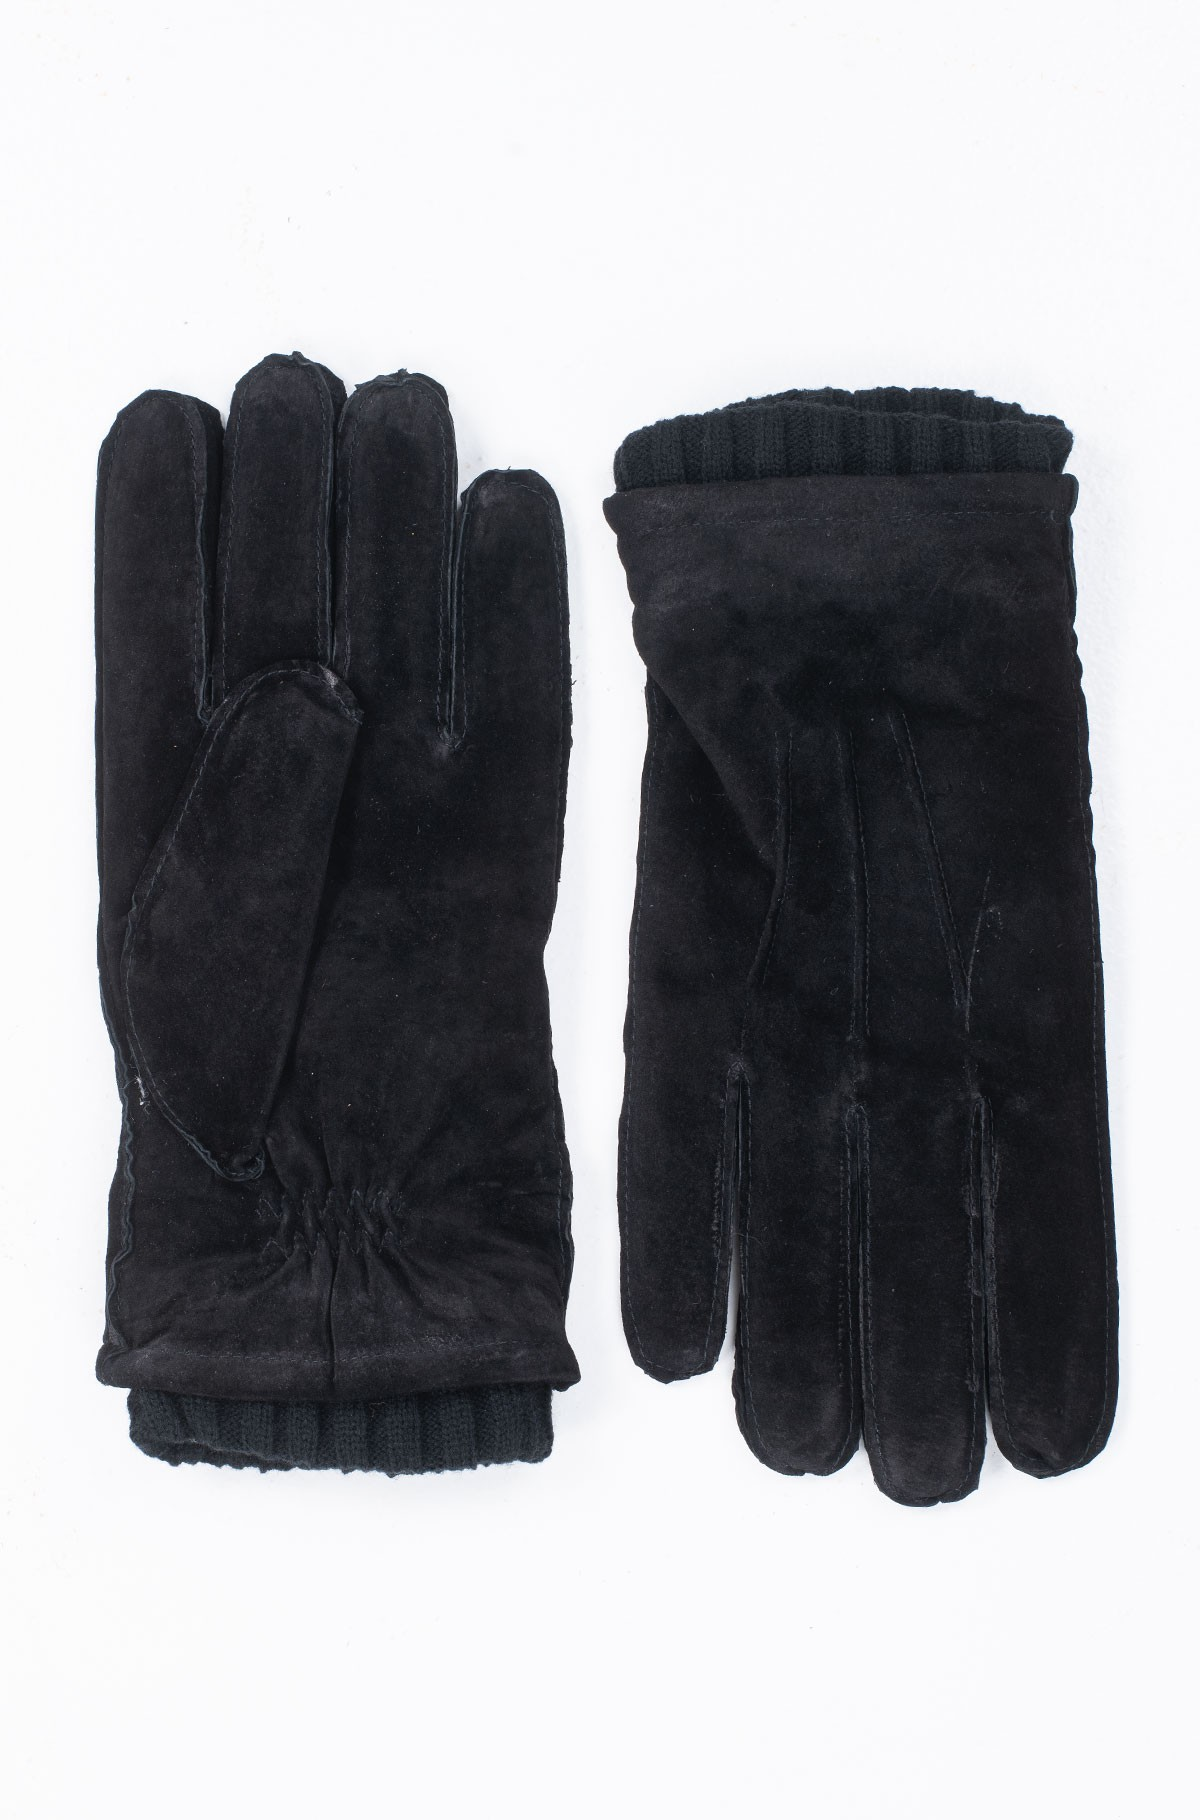 Cimdi LEONARDO GLOVES/PM080052-full-1